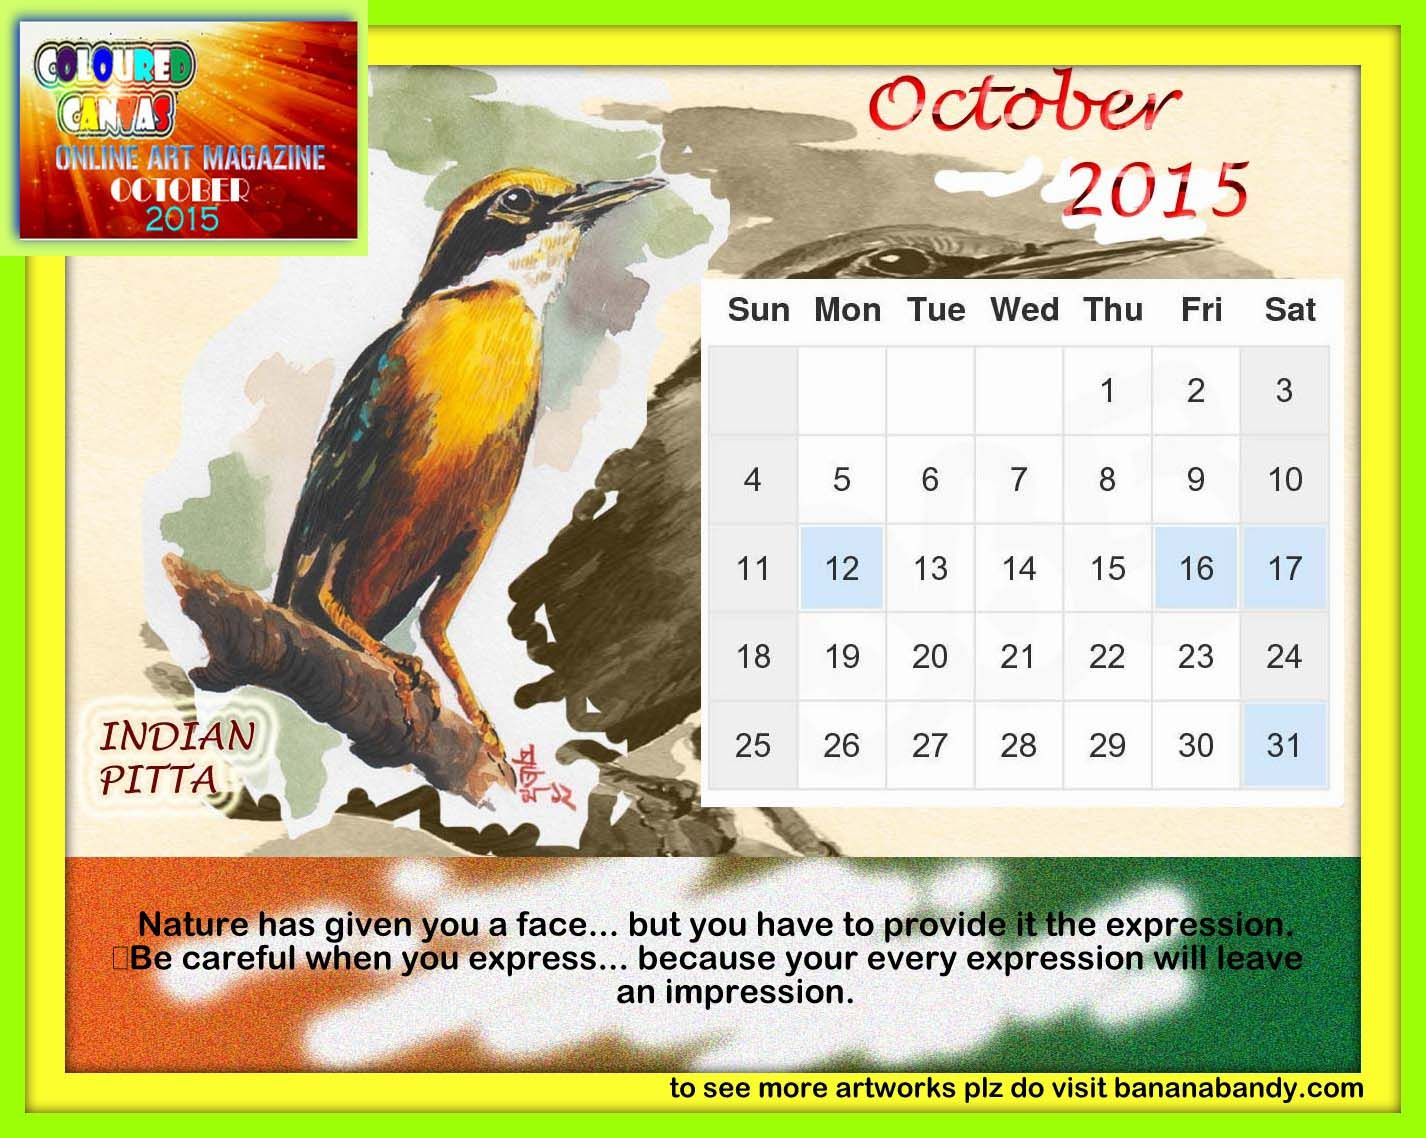 OCTOBER ...TIME FOR FESTIVALS!!!! FEEL FREE TO SHARE !!! INDIAN PITTA... (Pitta brachyura) is a medium-sized passerine bird. It breeds mainly in the sub-Himalayas and winters in southern India and Sri Lanka. These birds are found in thick undergrowth and are often more easily detected by their calls. The bird normally hops on the ground to forage and has been known to get trapped in ground traps meant for small mammals. It has been suggested that the width of the coronal stripe may differ in…